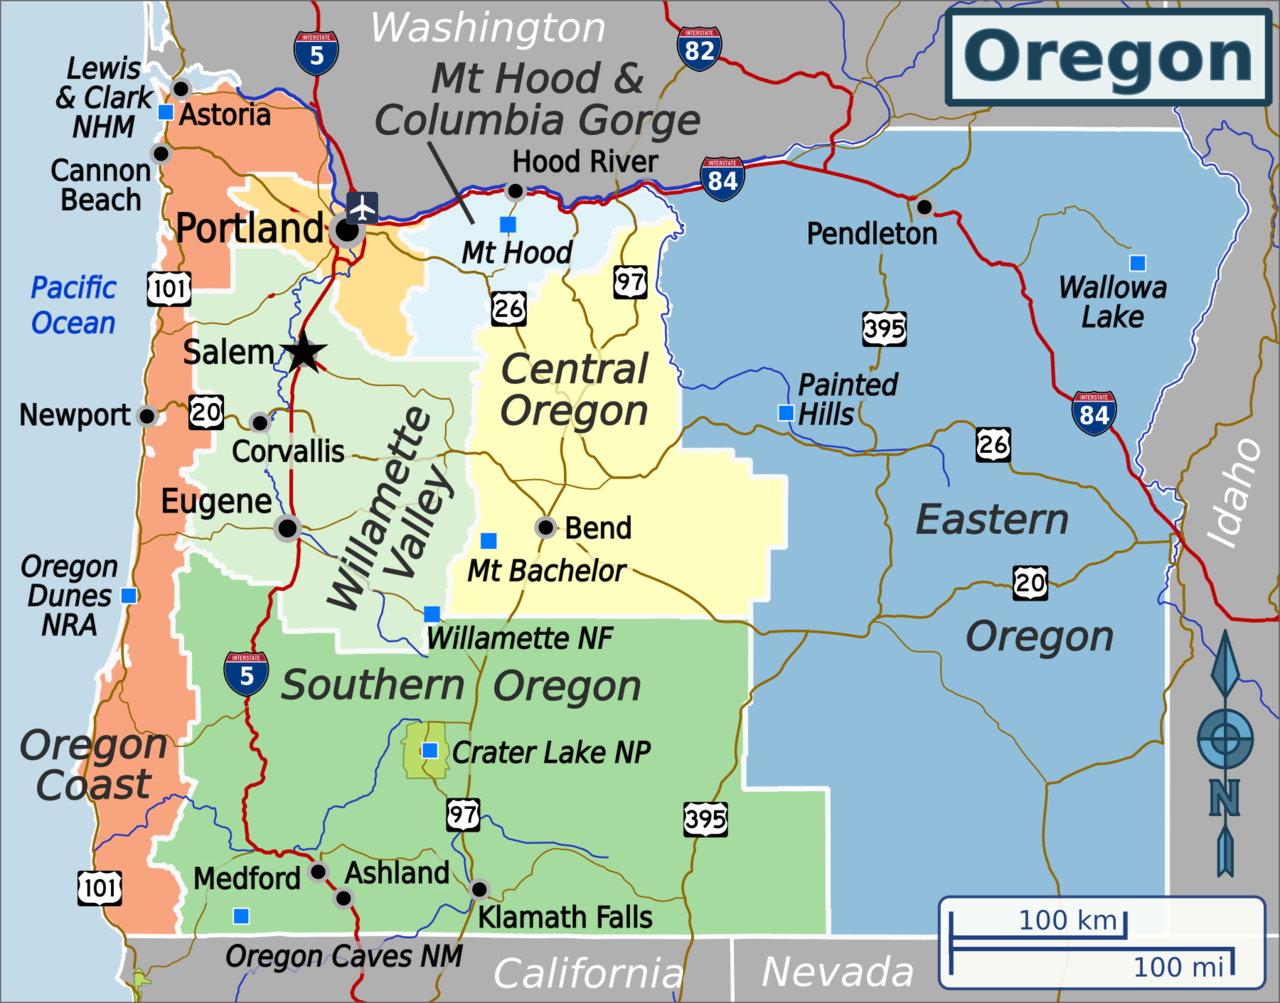 FileOregon WV region map ENpng Wikimedia Commons